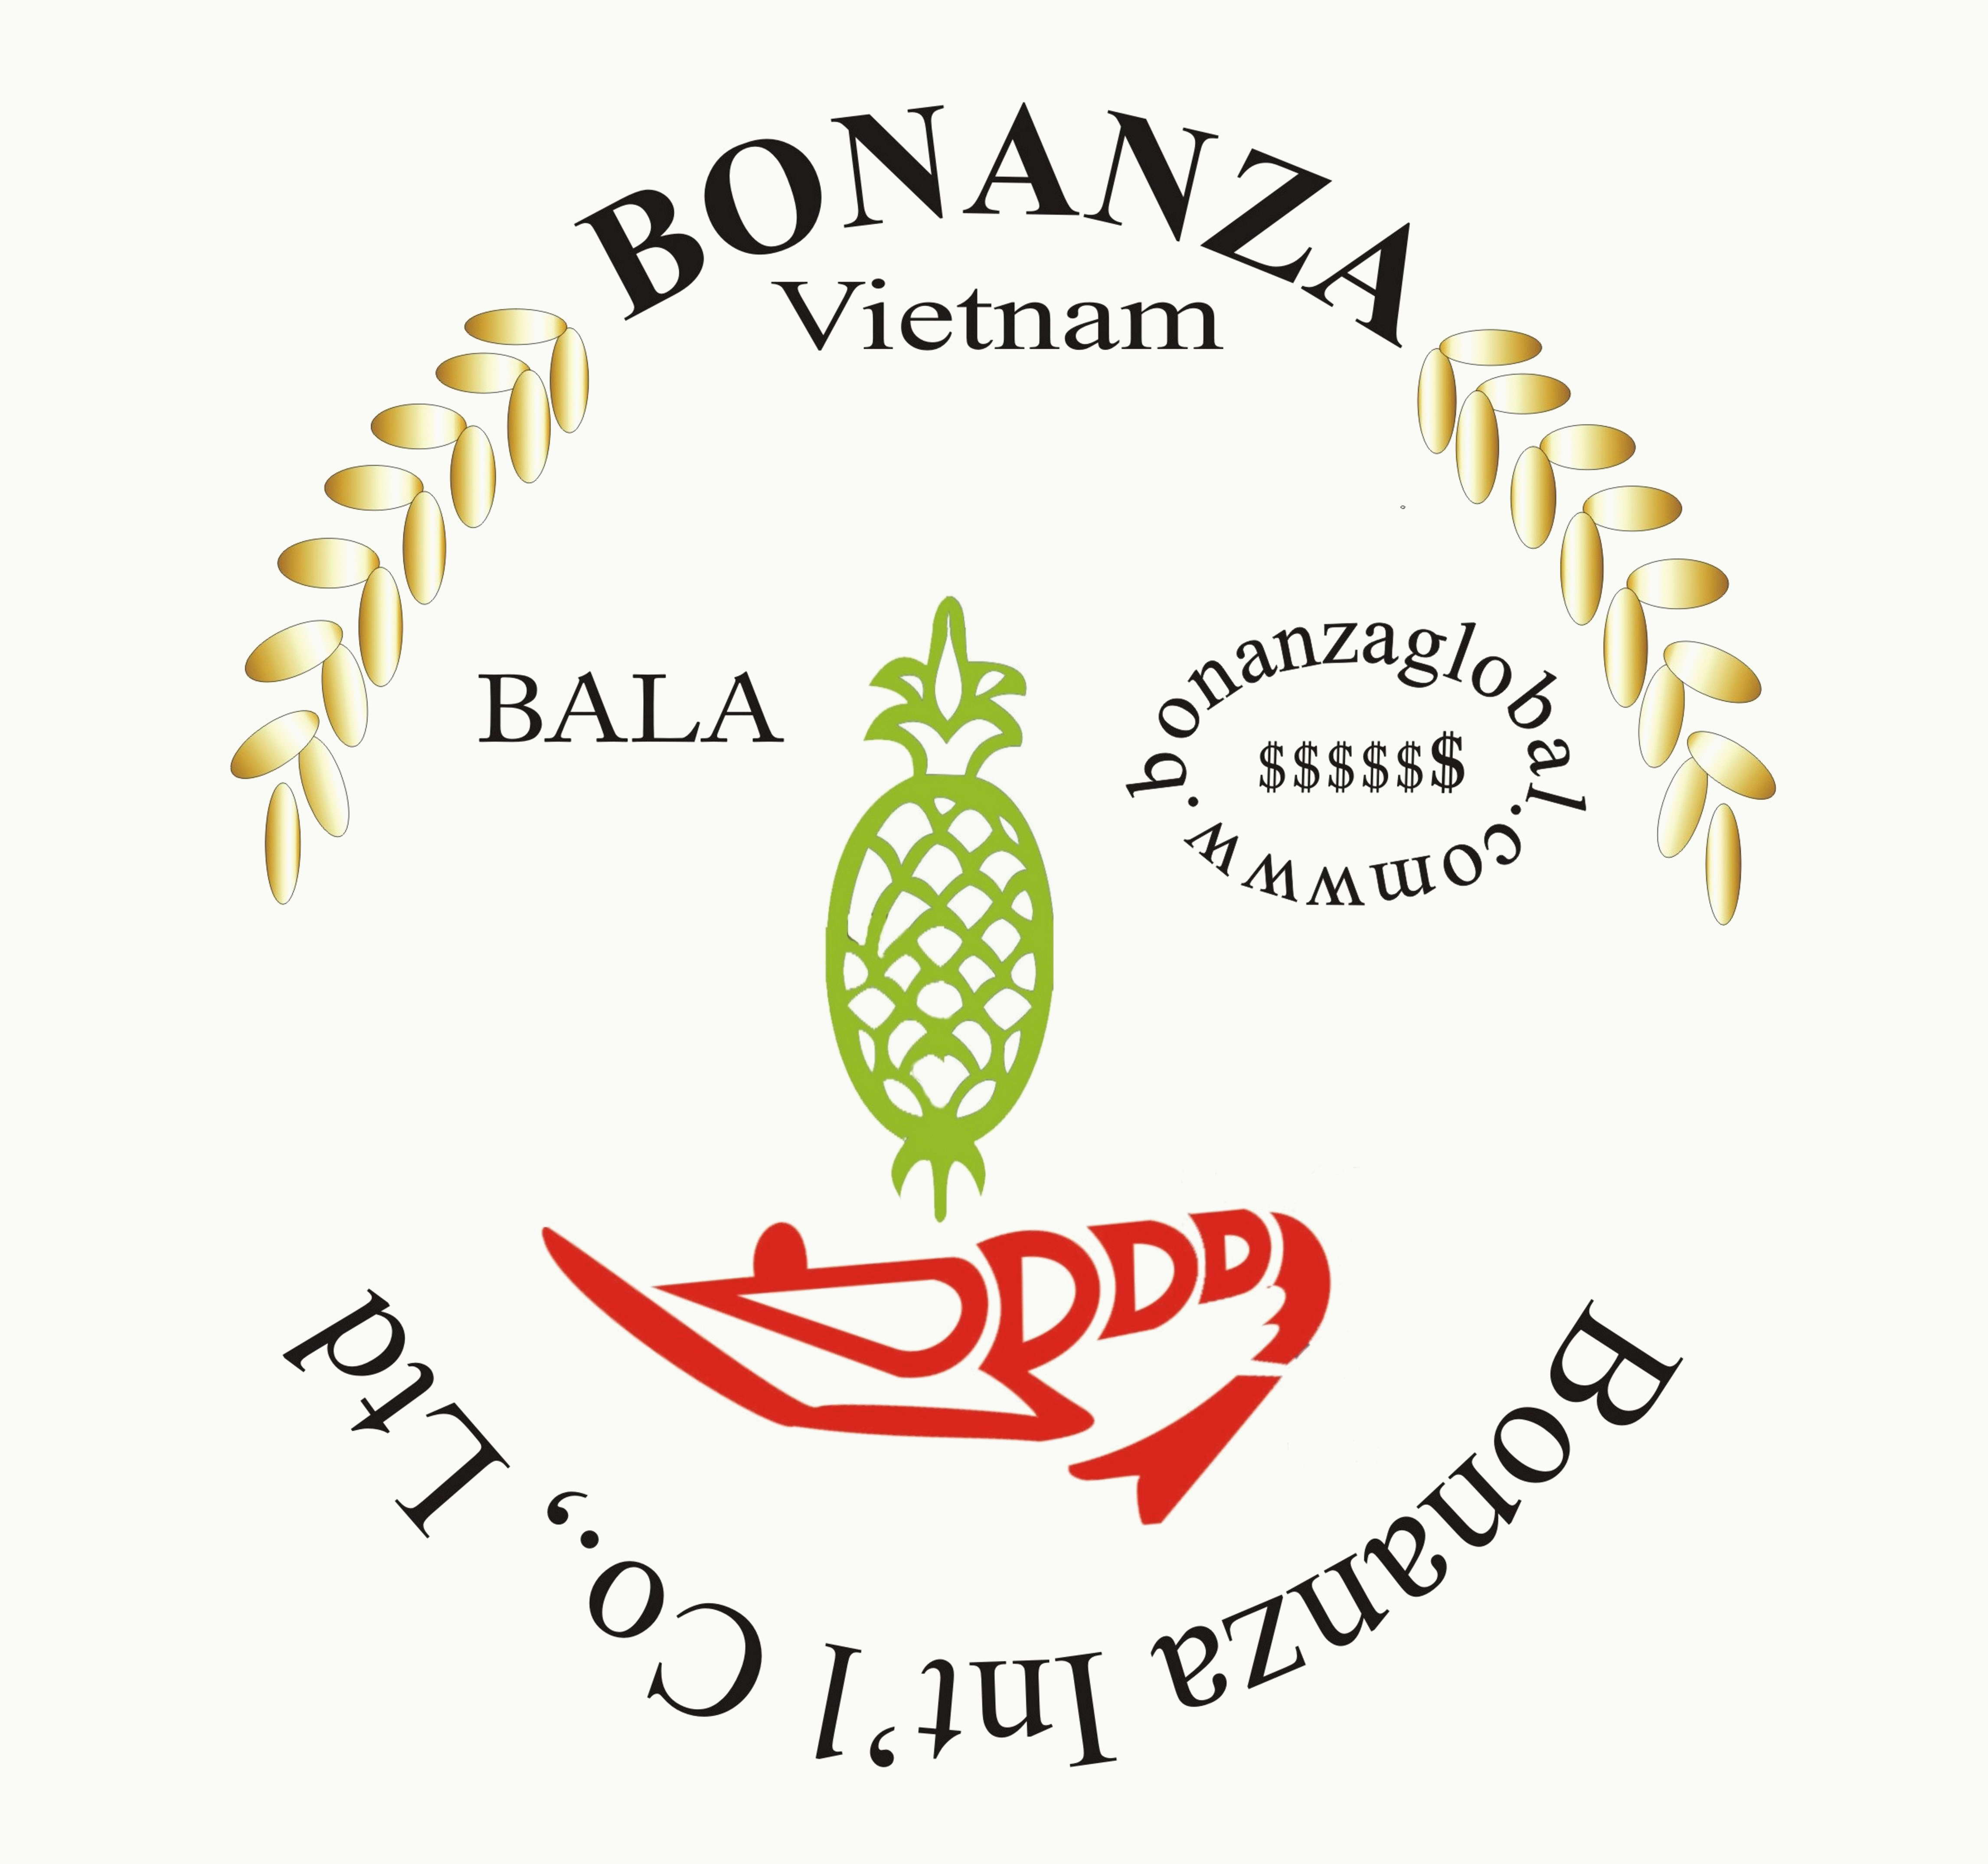 Bonanza International Co., Ltd Vietnam logo